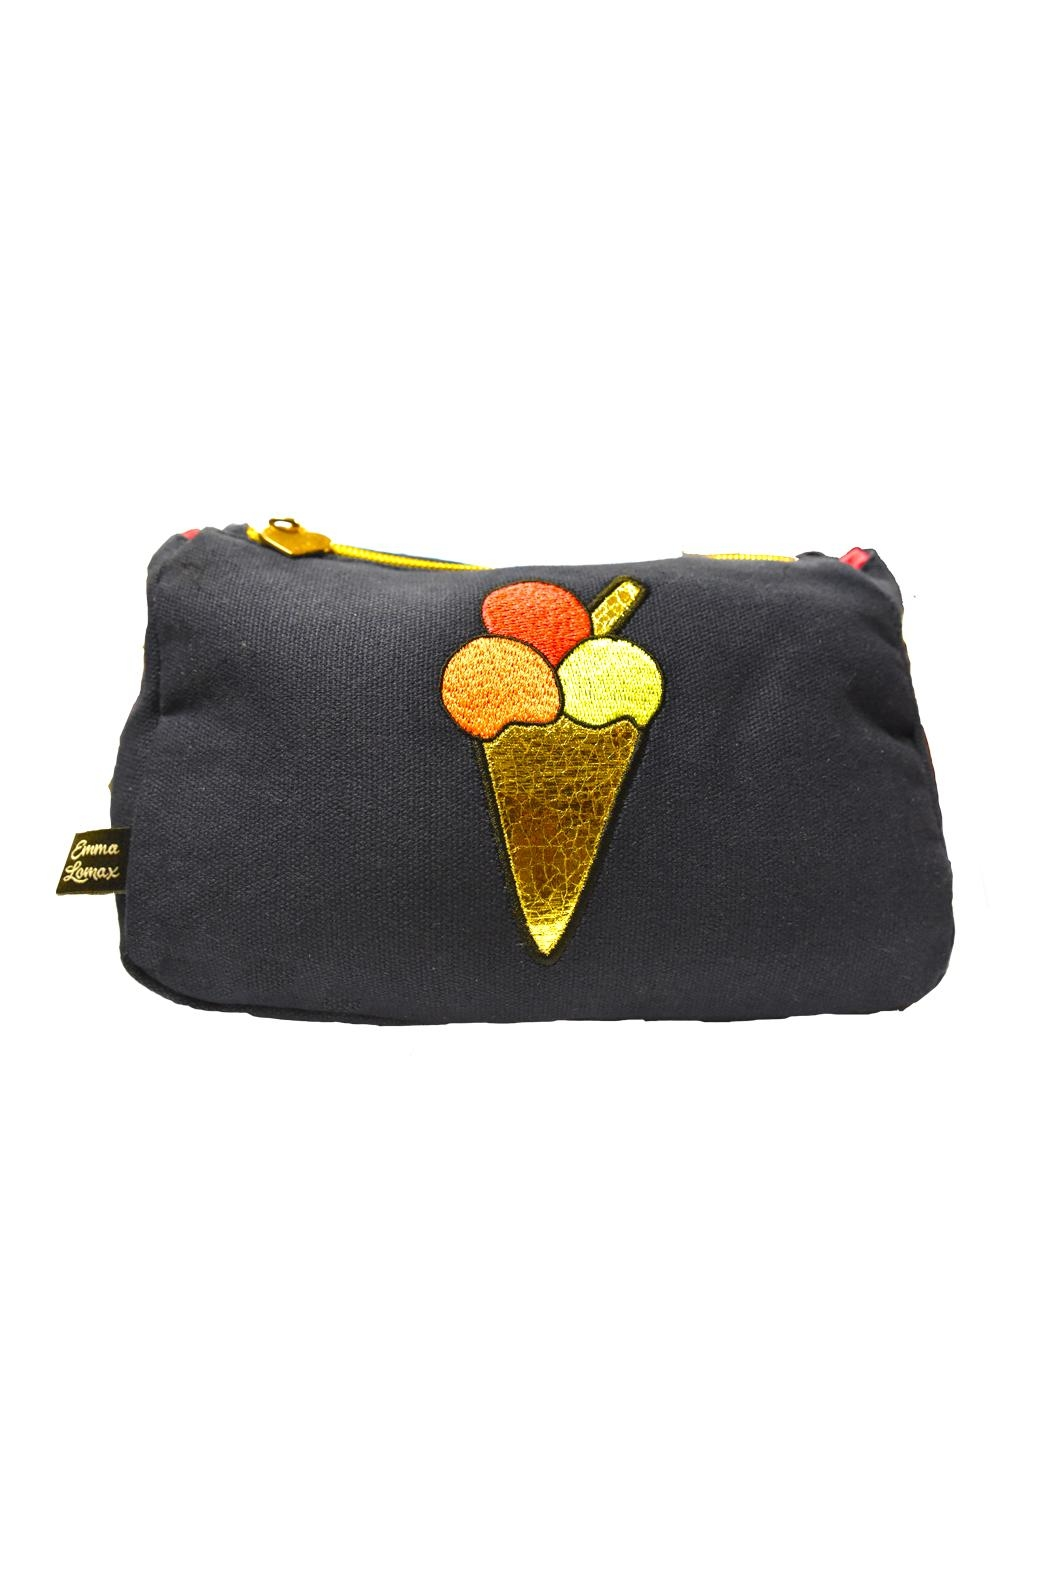 Emma Lomax Makeup Ice Cream Pouch - Main Image